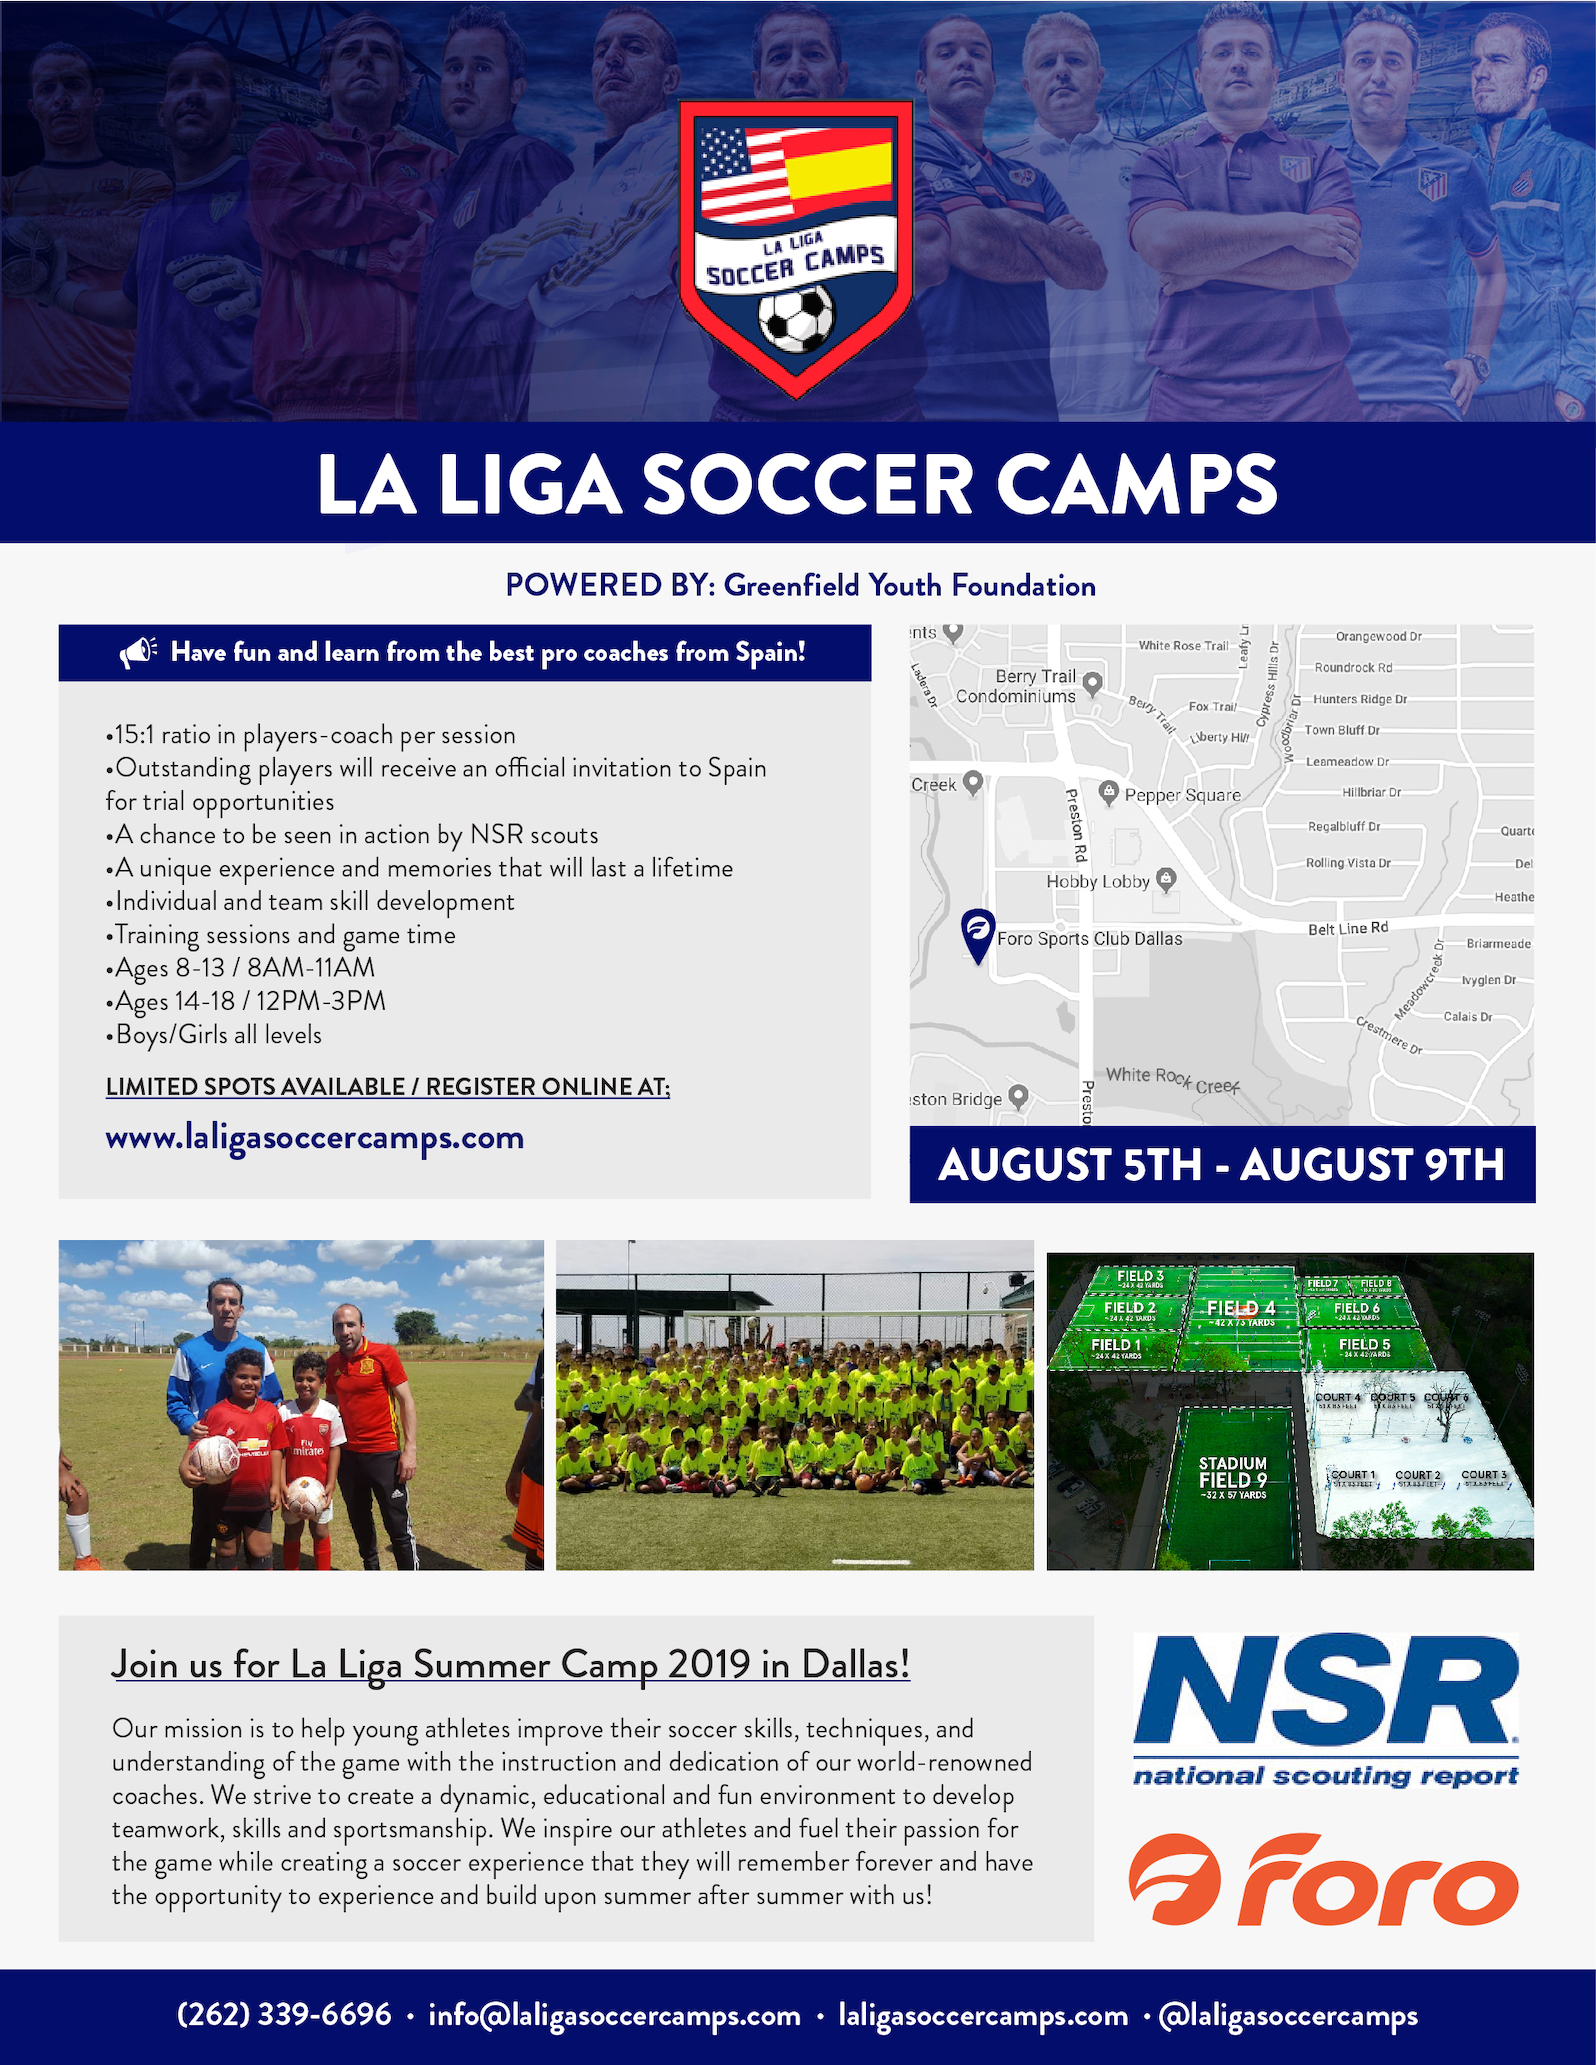 La Liga Soccer Camp - From August 5th to August 9th we will be at Dallas. So if you live in or arounds Dallas bring your athletes to improve their skills with our top coaches.Our mission:Our mission is to help young athletes improve their soccer skills, techniques, and understanding of the game with the instruction and dedication of our world renowned coaches. To create a dynamic, educational and fun environment to develope teamwork skills and sportsmanship. To inspire our athletes and fuel their passion for the game. To create a soccer experience that they will remember forever and have the opportunity to experience and build upon summer after summer with us.Coaches in this camp:- Paco Lobato , from Atlético de Madrid- Fermín Martínez, from Atlético de MadridSessions:8 a.m.- 11 a.m. : Ages from 8 to 13. Boys&Girls all playing abilities.12 p.m. - 15 p.m. : Ages from 14-19. Boys&Girls all playing abilities.